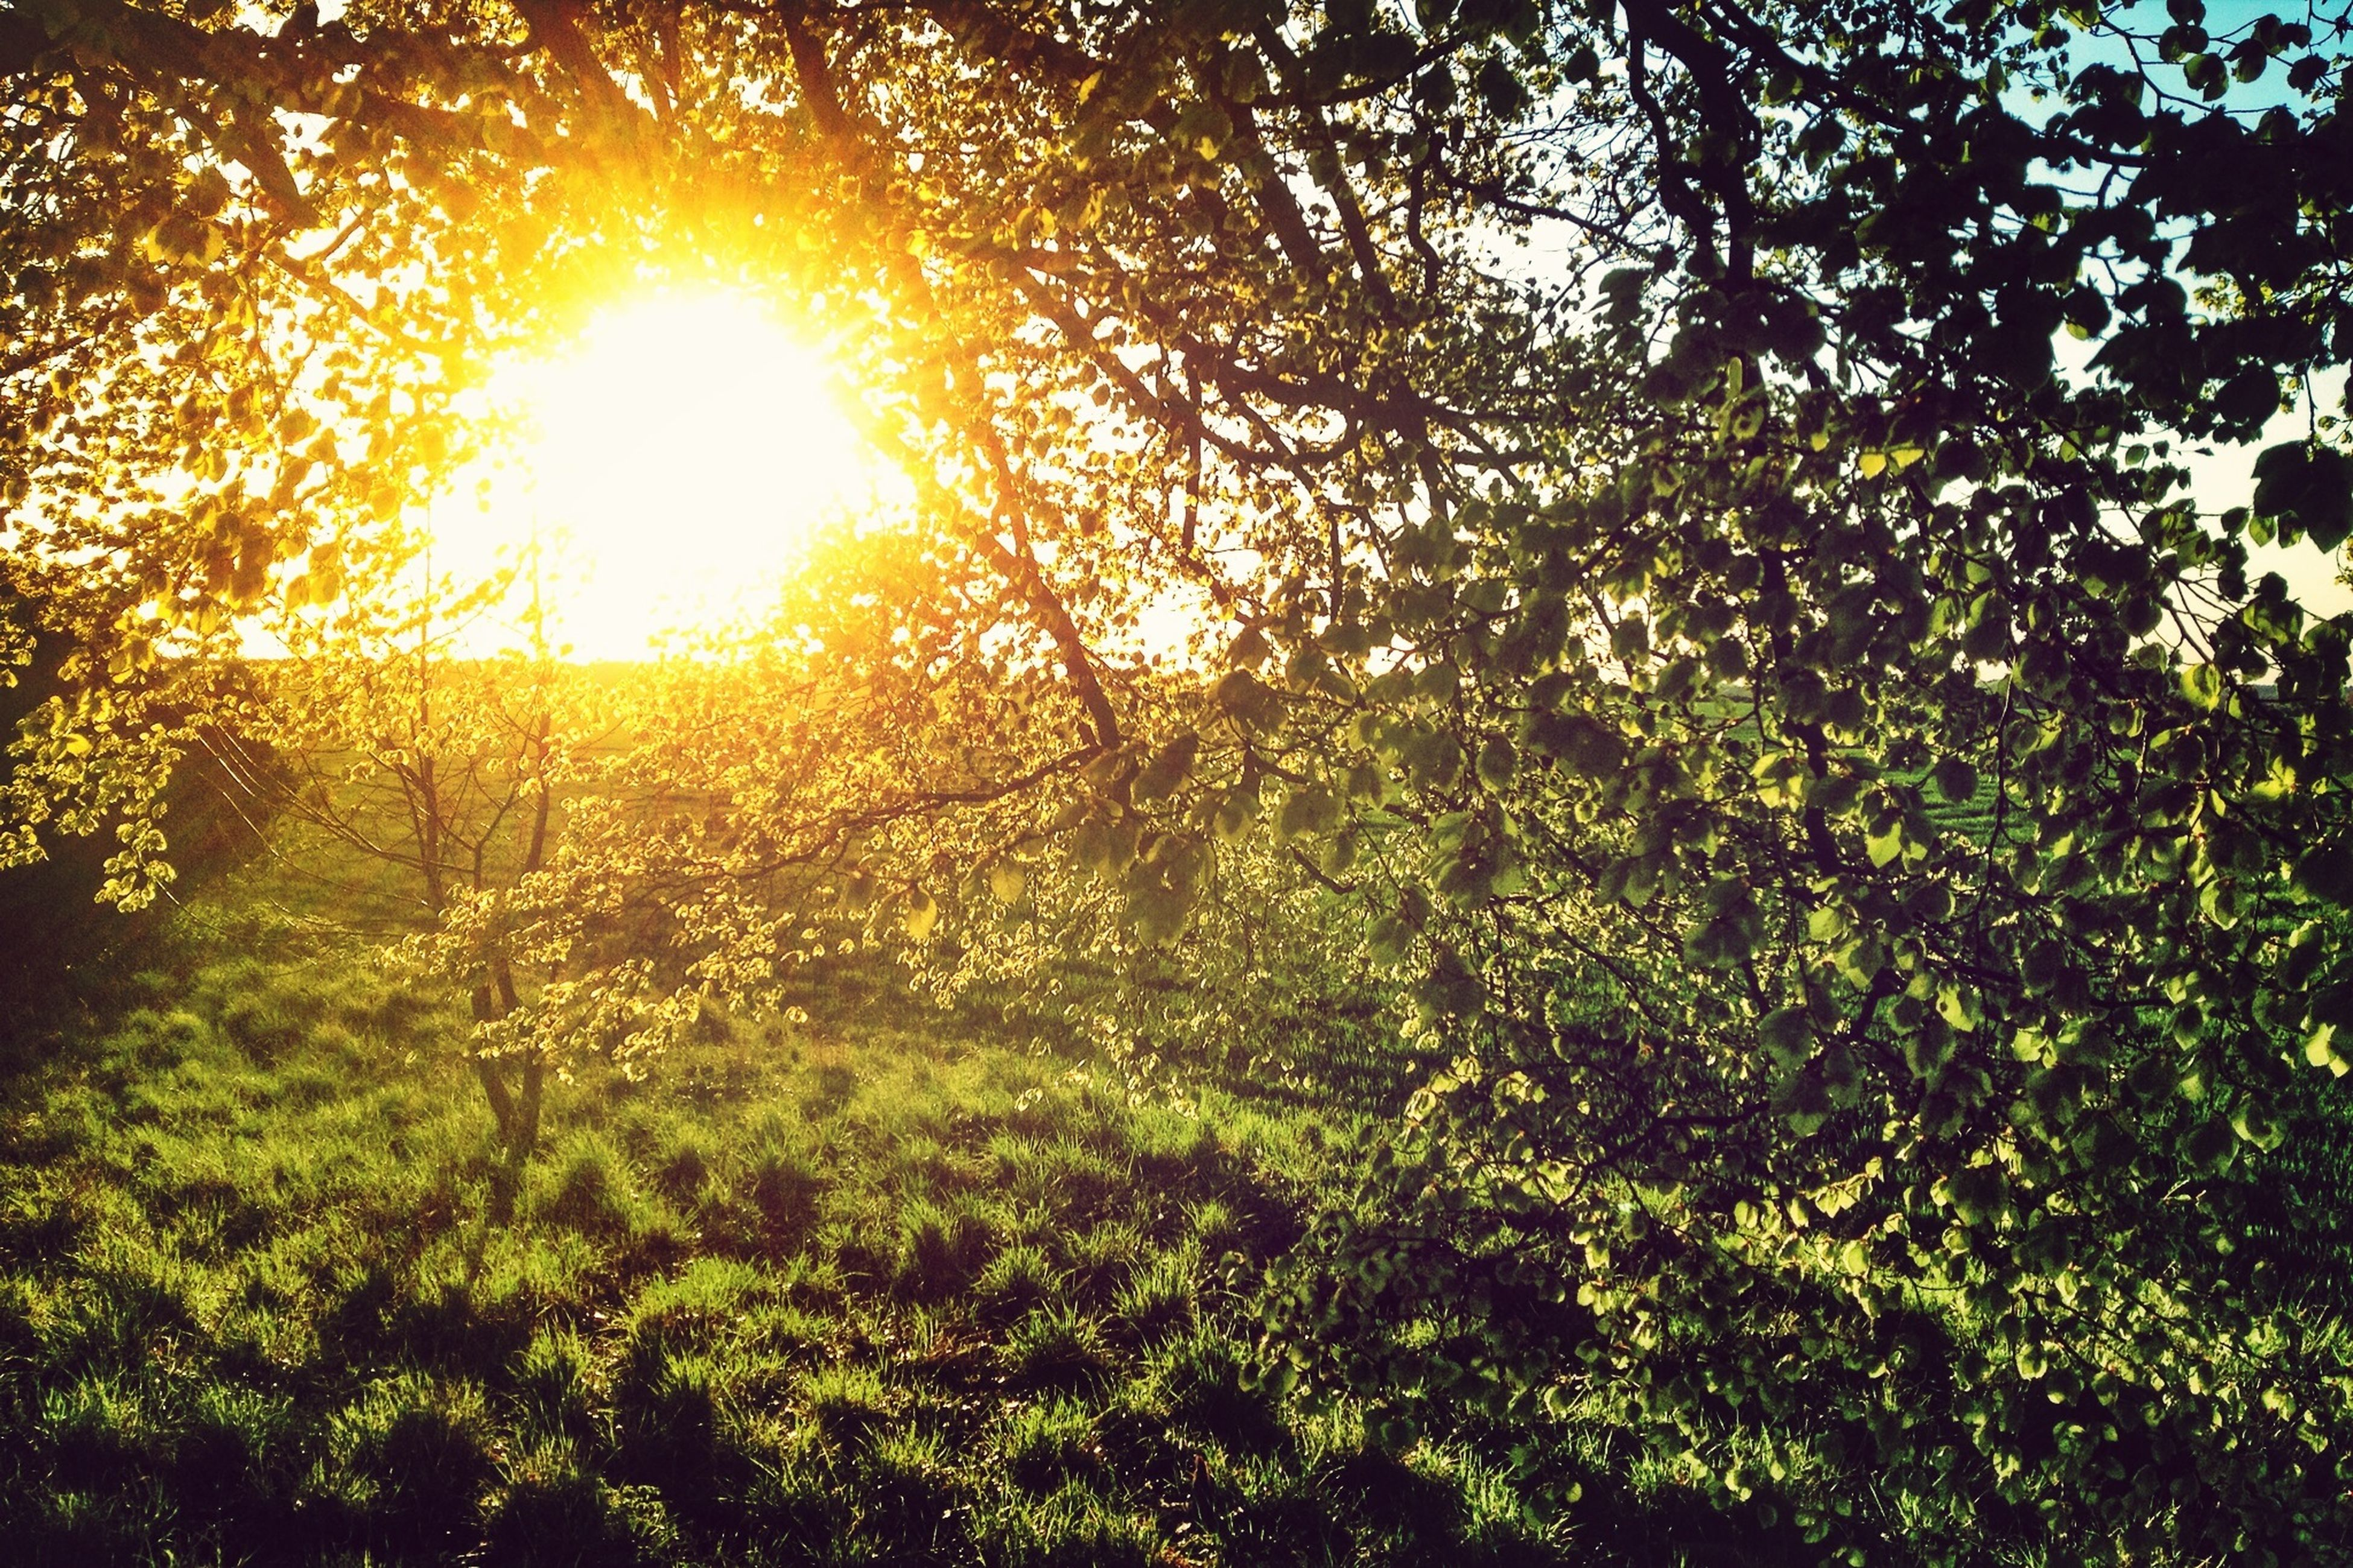 sun, tree, sunbeam, sunlight, growth, lens flare, tranquility, beauty in nature, nature, tranquil scene, scenics, green color, branch, sunny, field, forest, grass, bright, plant, idyllic